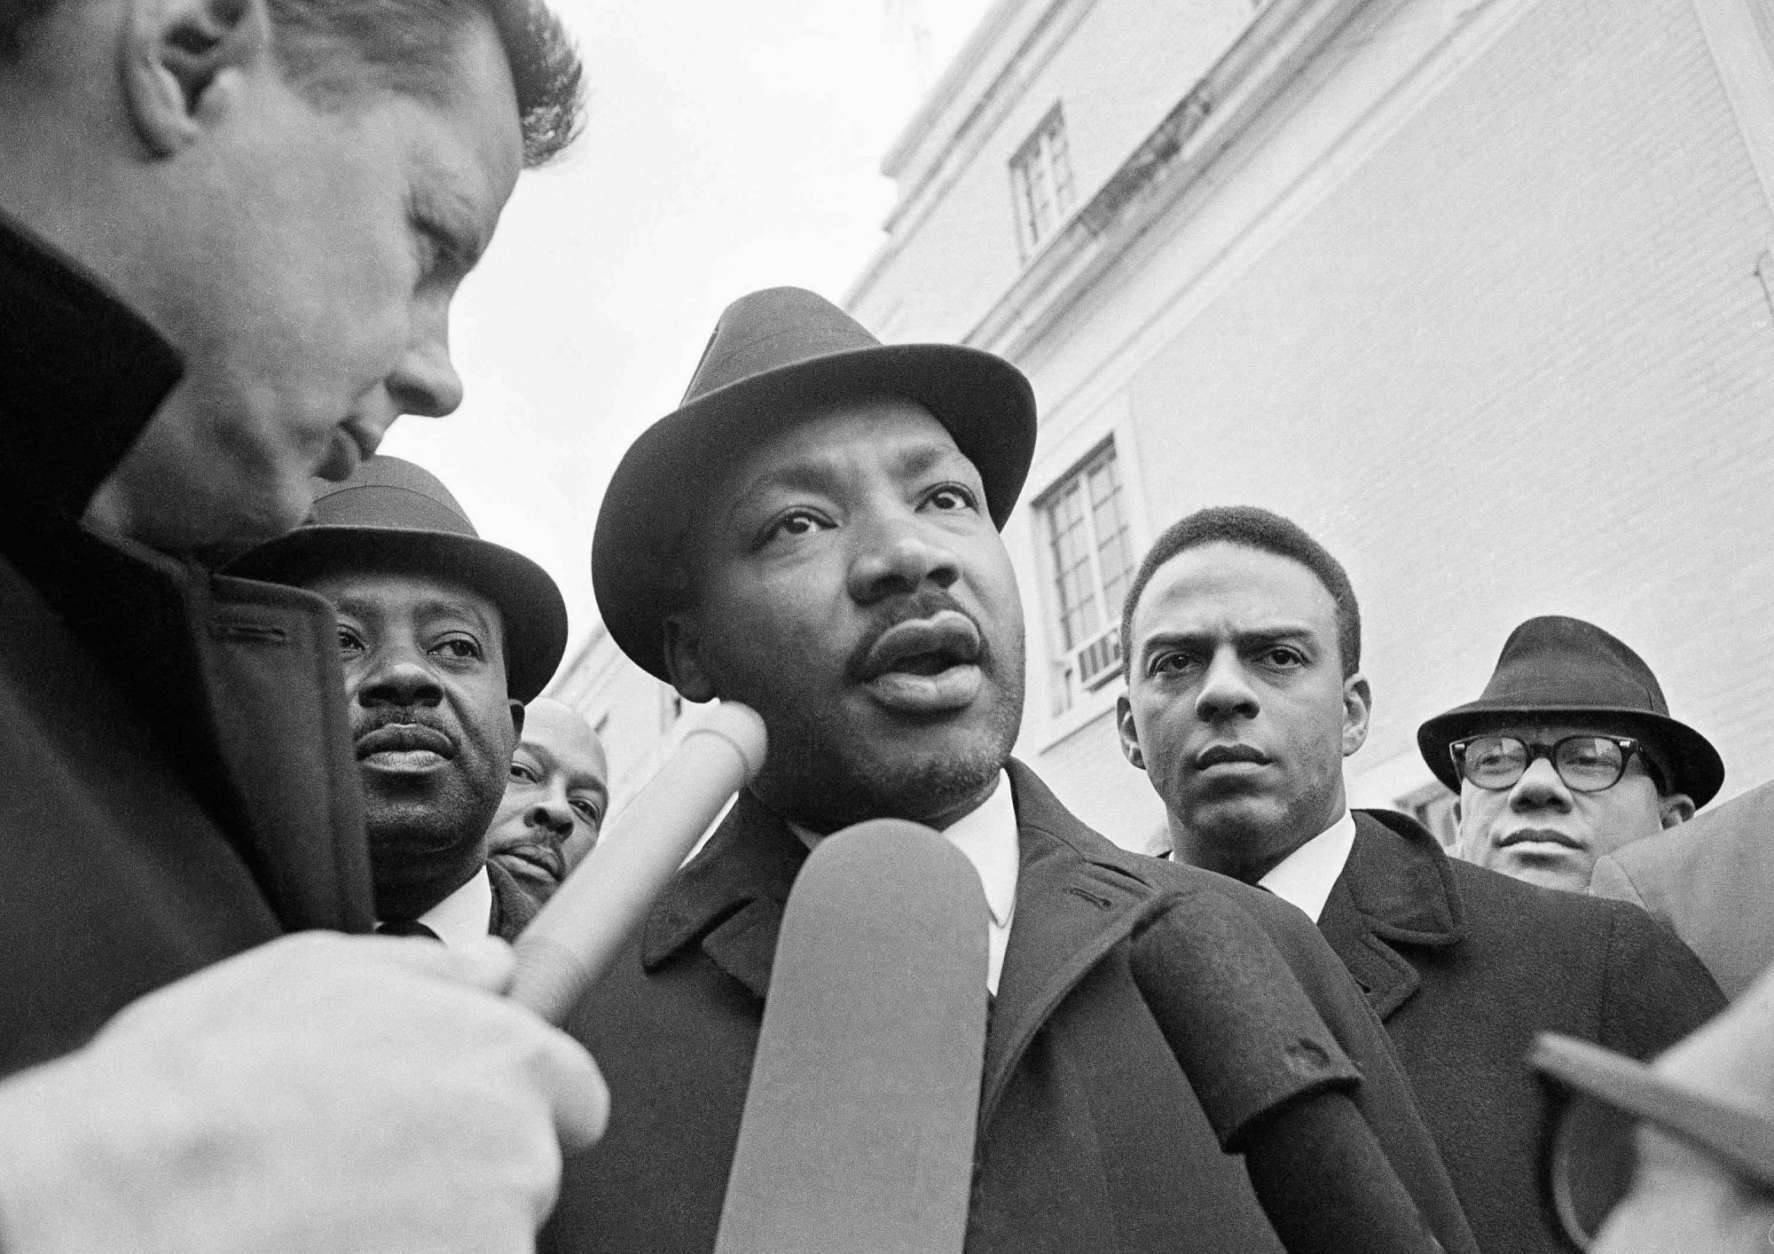 FILE - In this Feb. 5, 1965 file photo, Dr. Martin Luther King Jr. is interviewed by newsmen as he left jail in Selma, Ala. The integration leader was arrested four days ago in a voter registration protest drive. (AP Photo/HC, File)